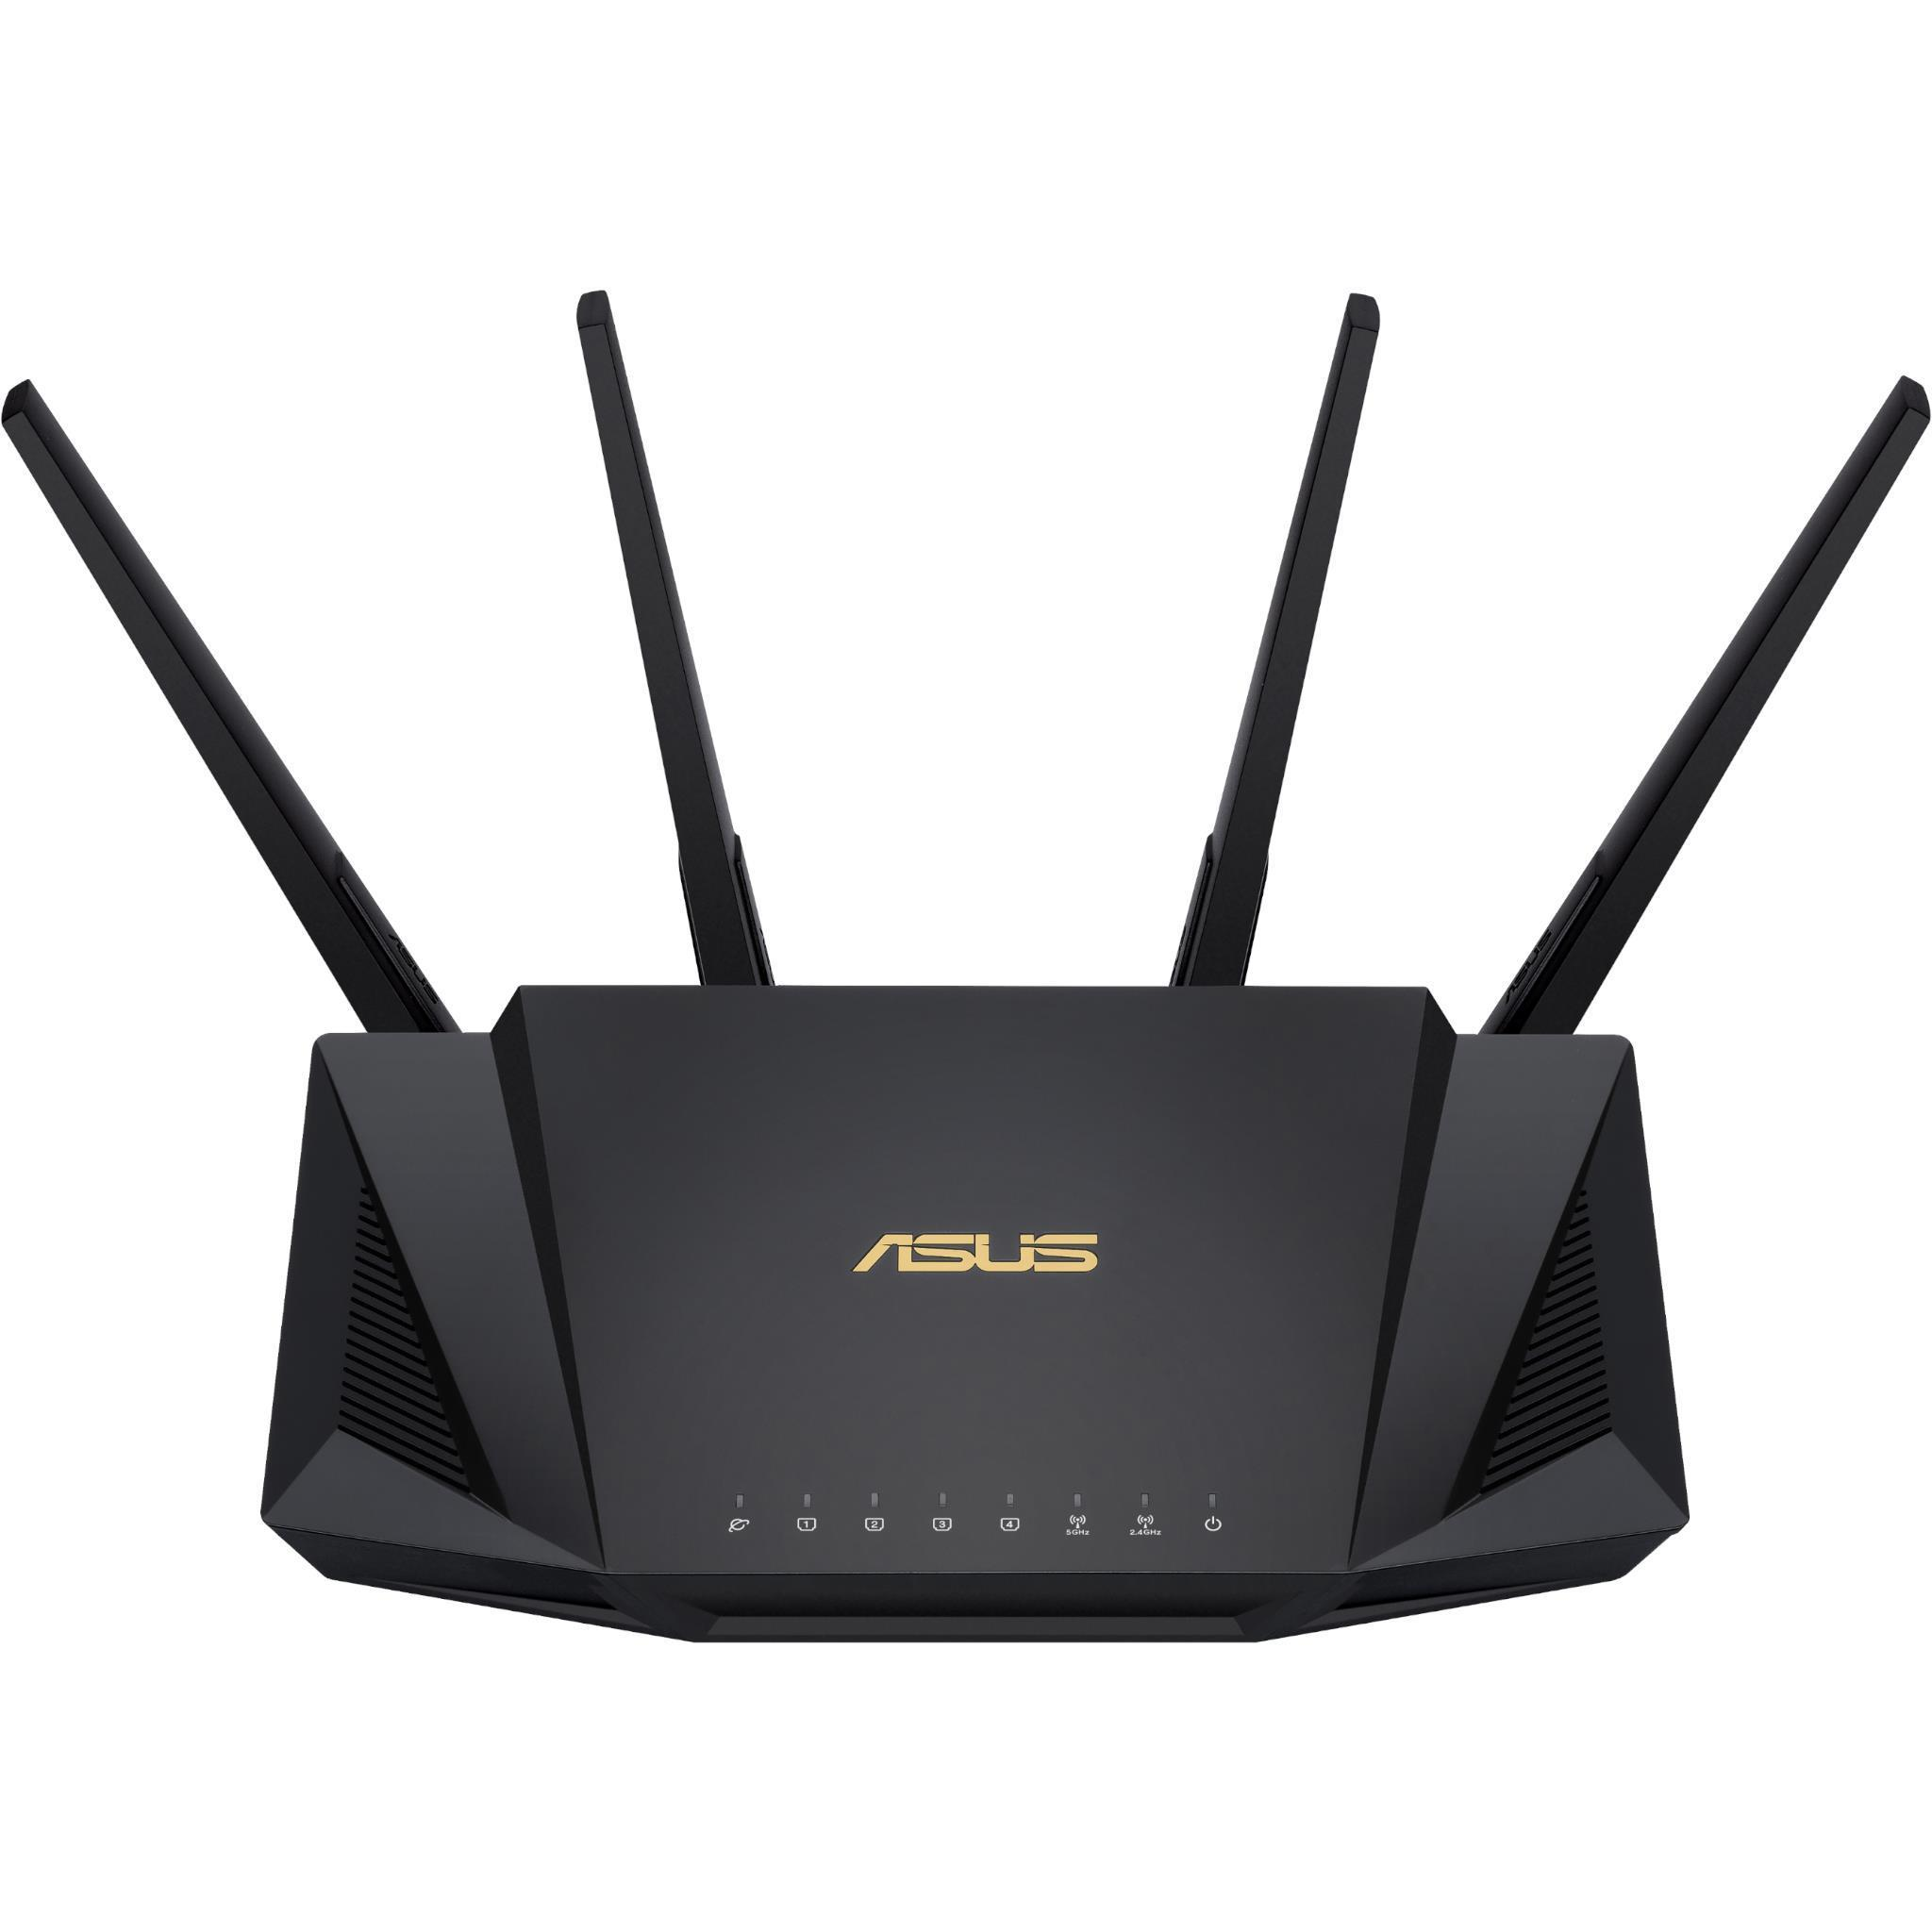 Asus RT-AX58U Dual Band AX3000 Wi-Fi 6 Router